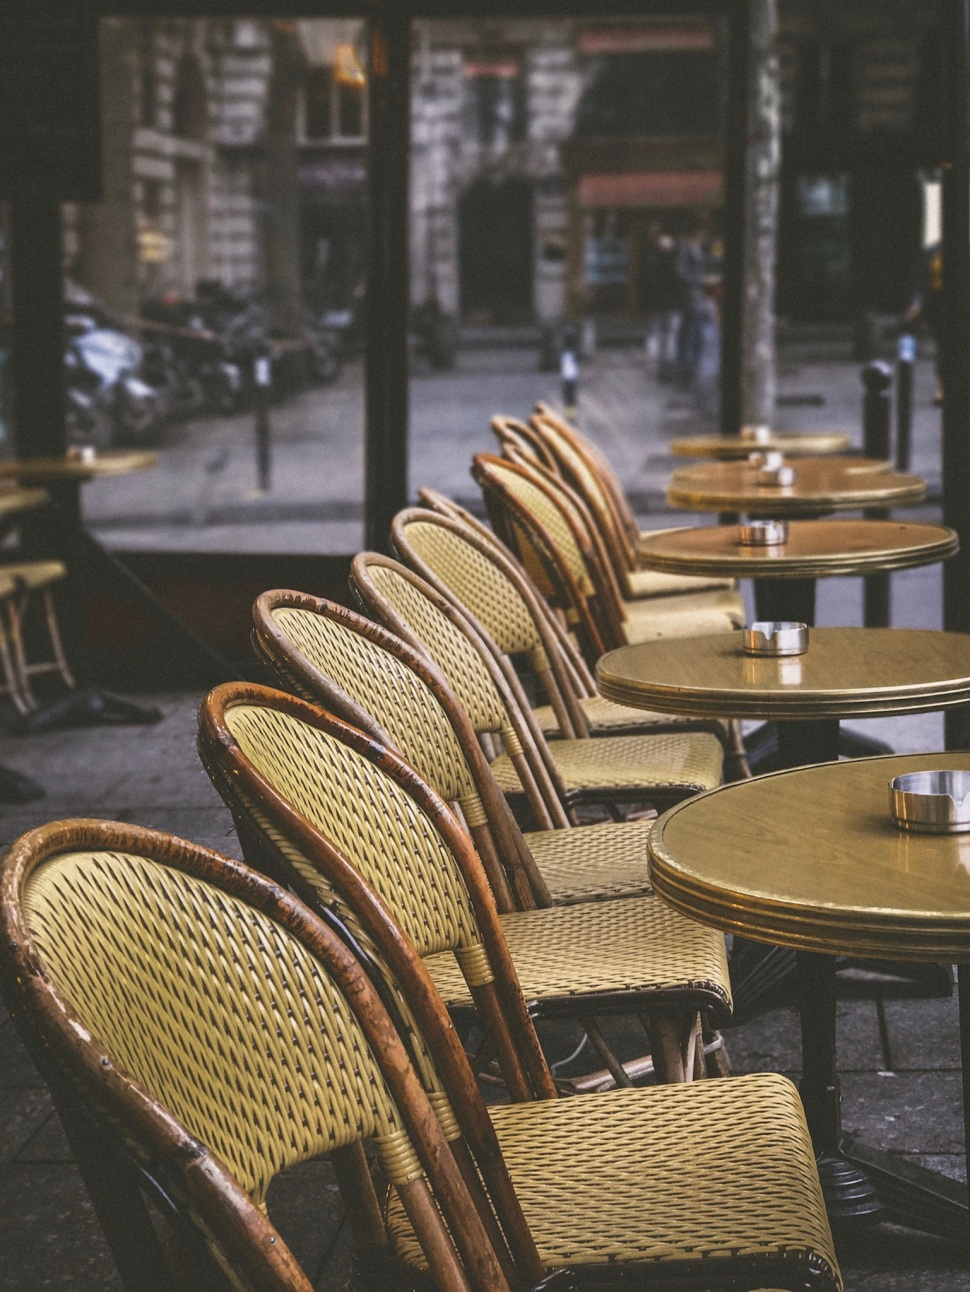 Café chairs, Place Saint Sulpice, Paris